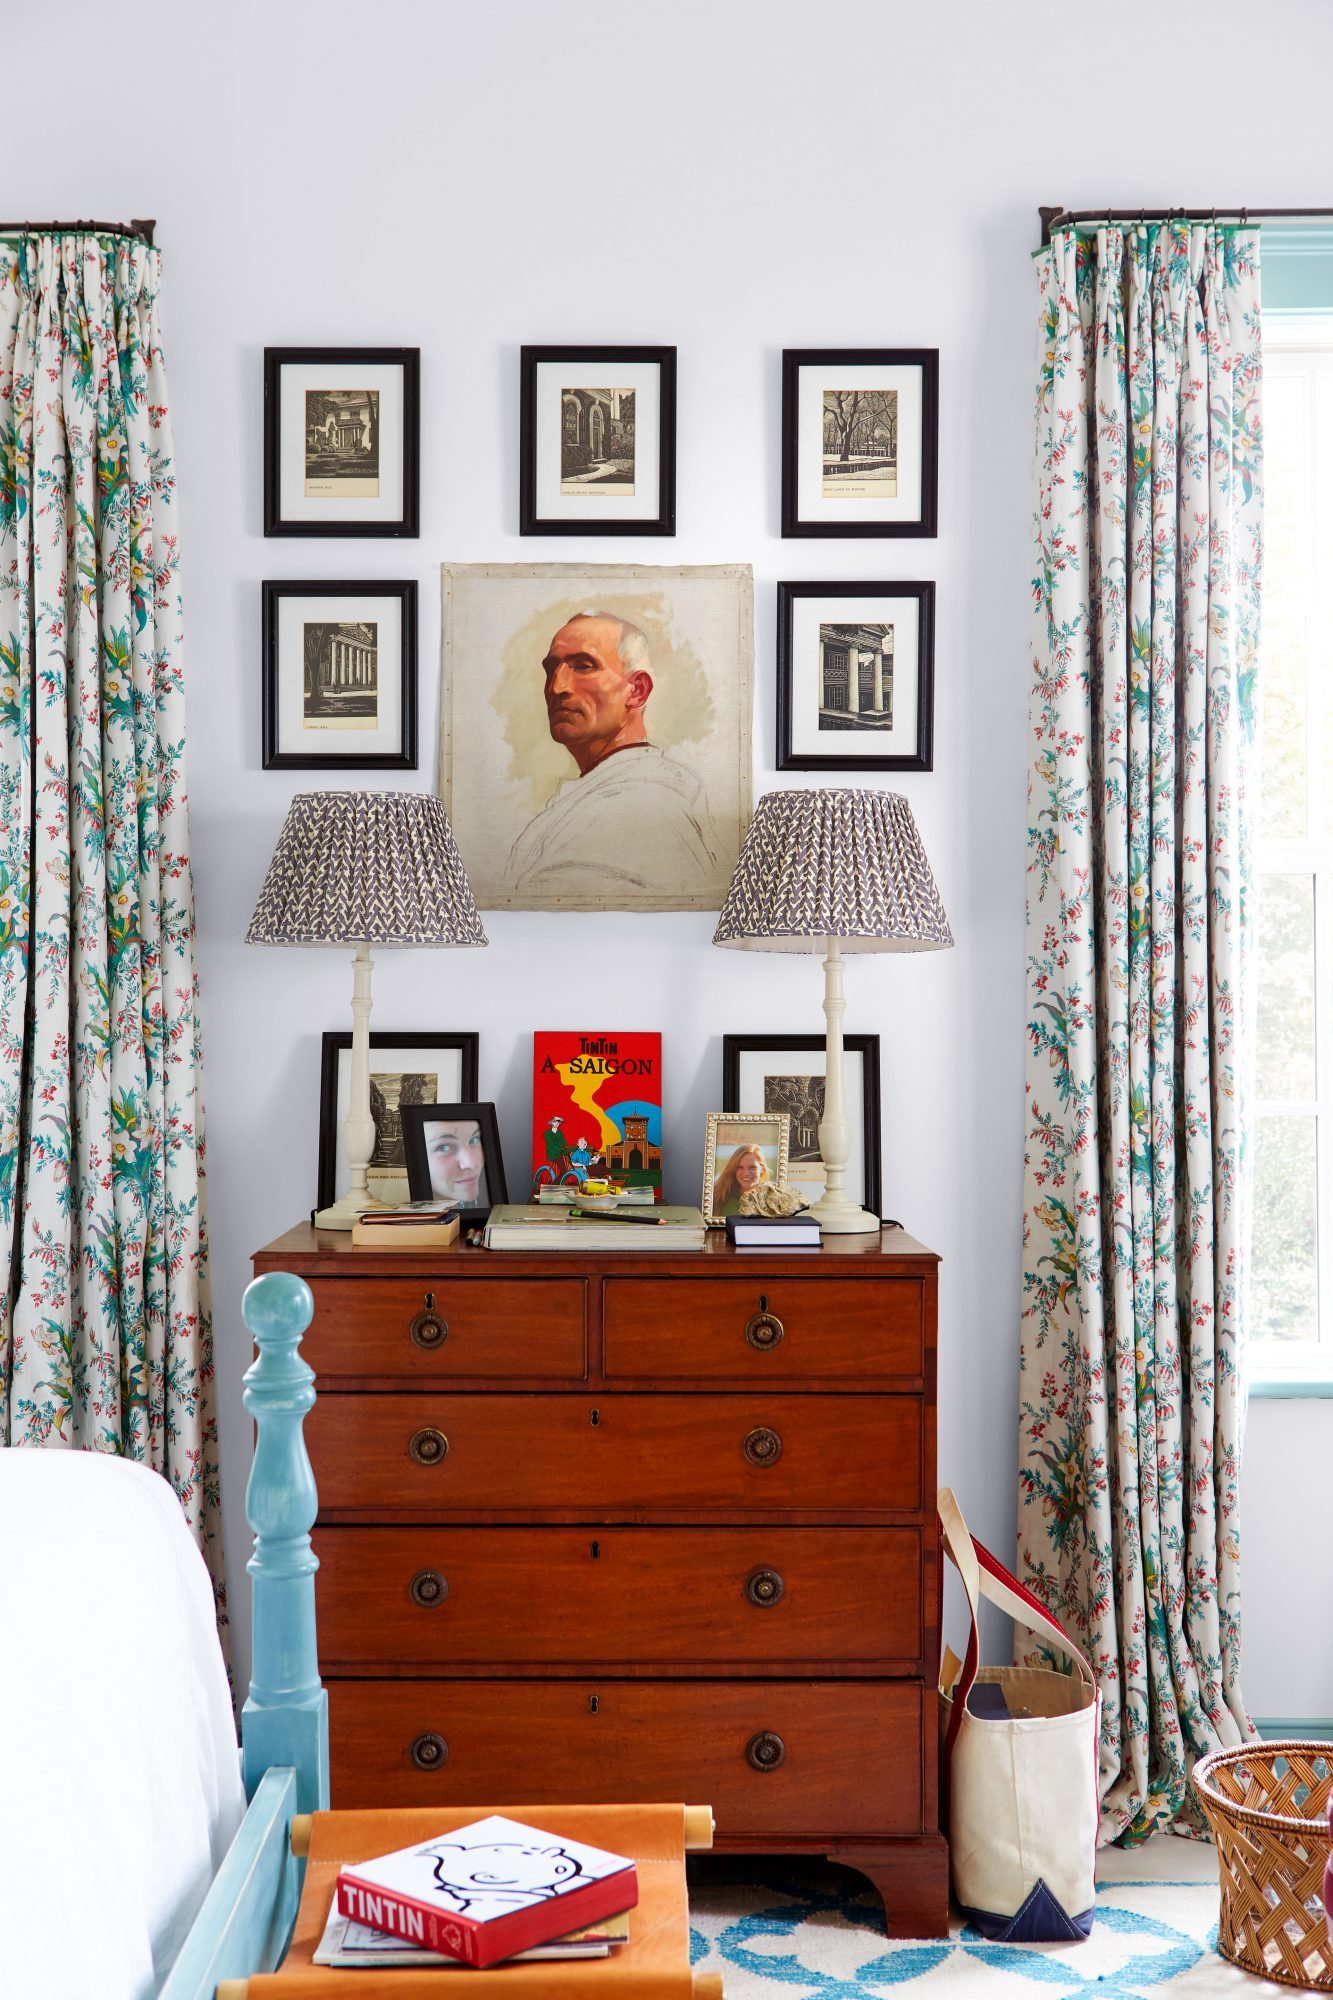 Madison Spencer Virginia Cottage Main Bedroom Dresser with Layered Art on Wall